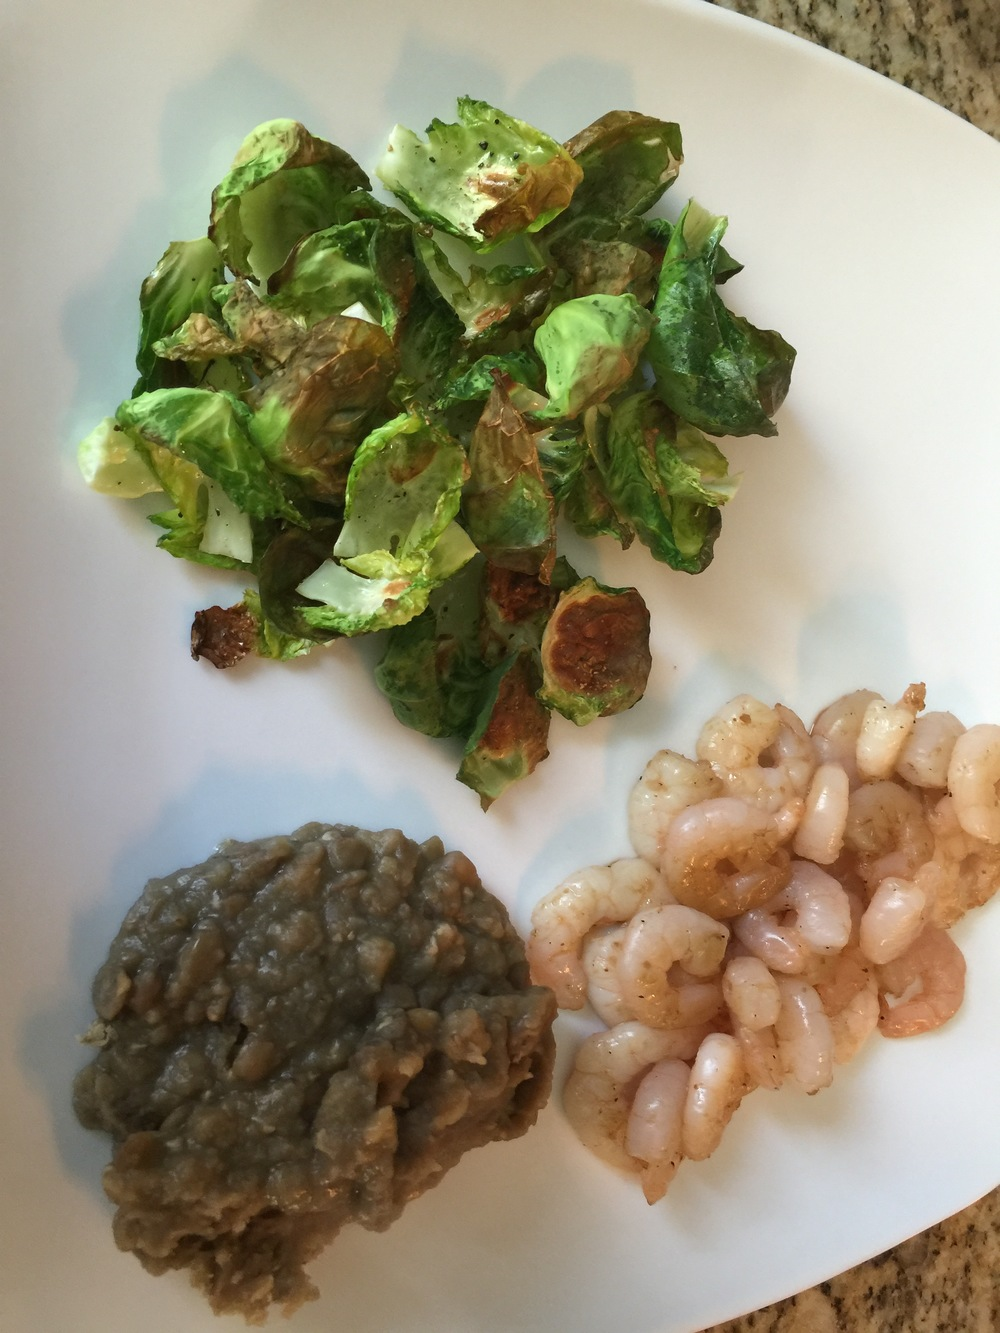 Brussels Sprouts chips, cooked shrimp and lentils